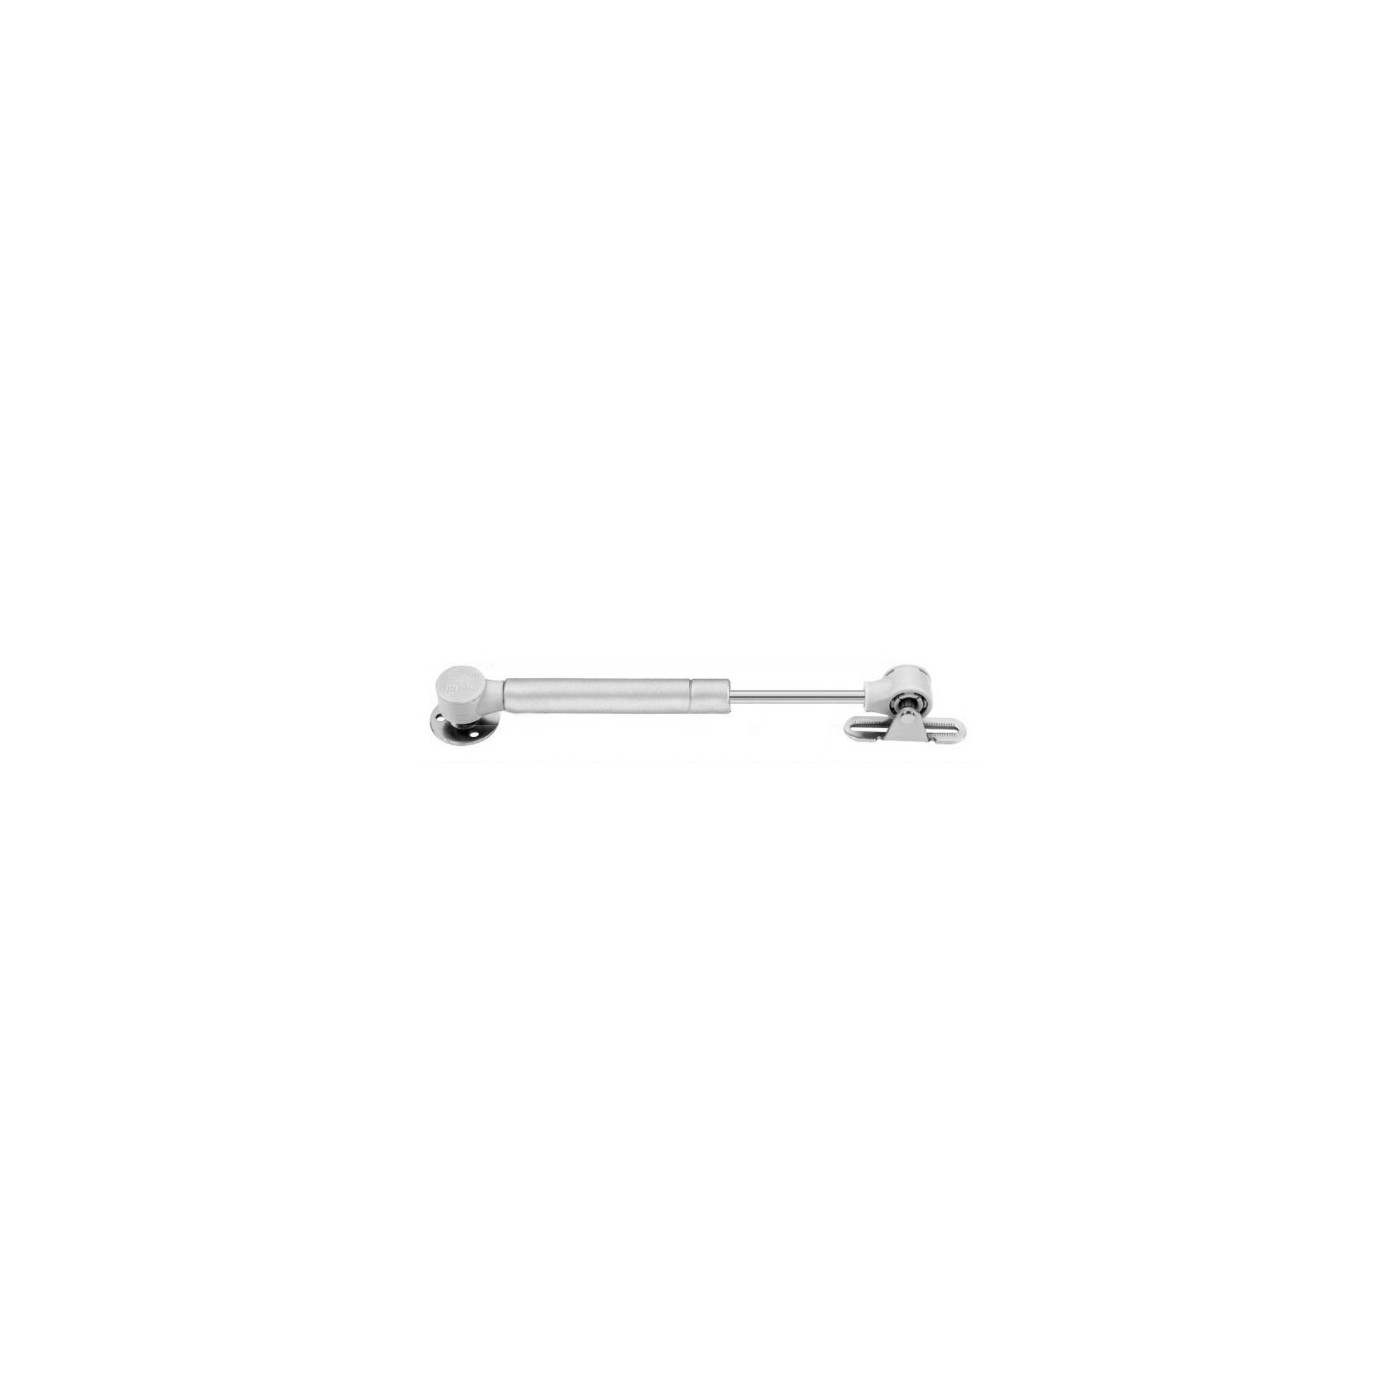 Universal gas spring with brackets (100N/10kg, 172 mm, silver)